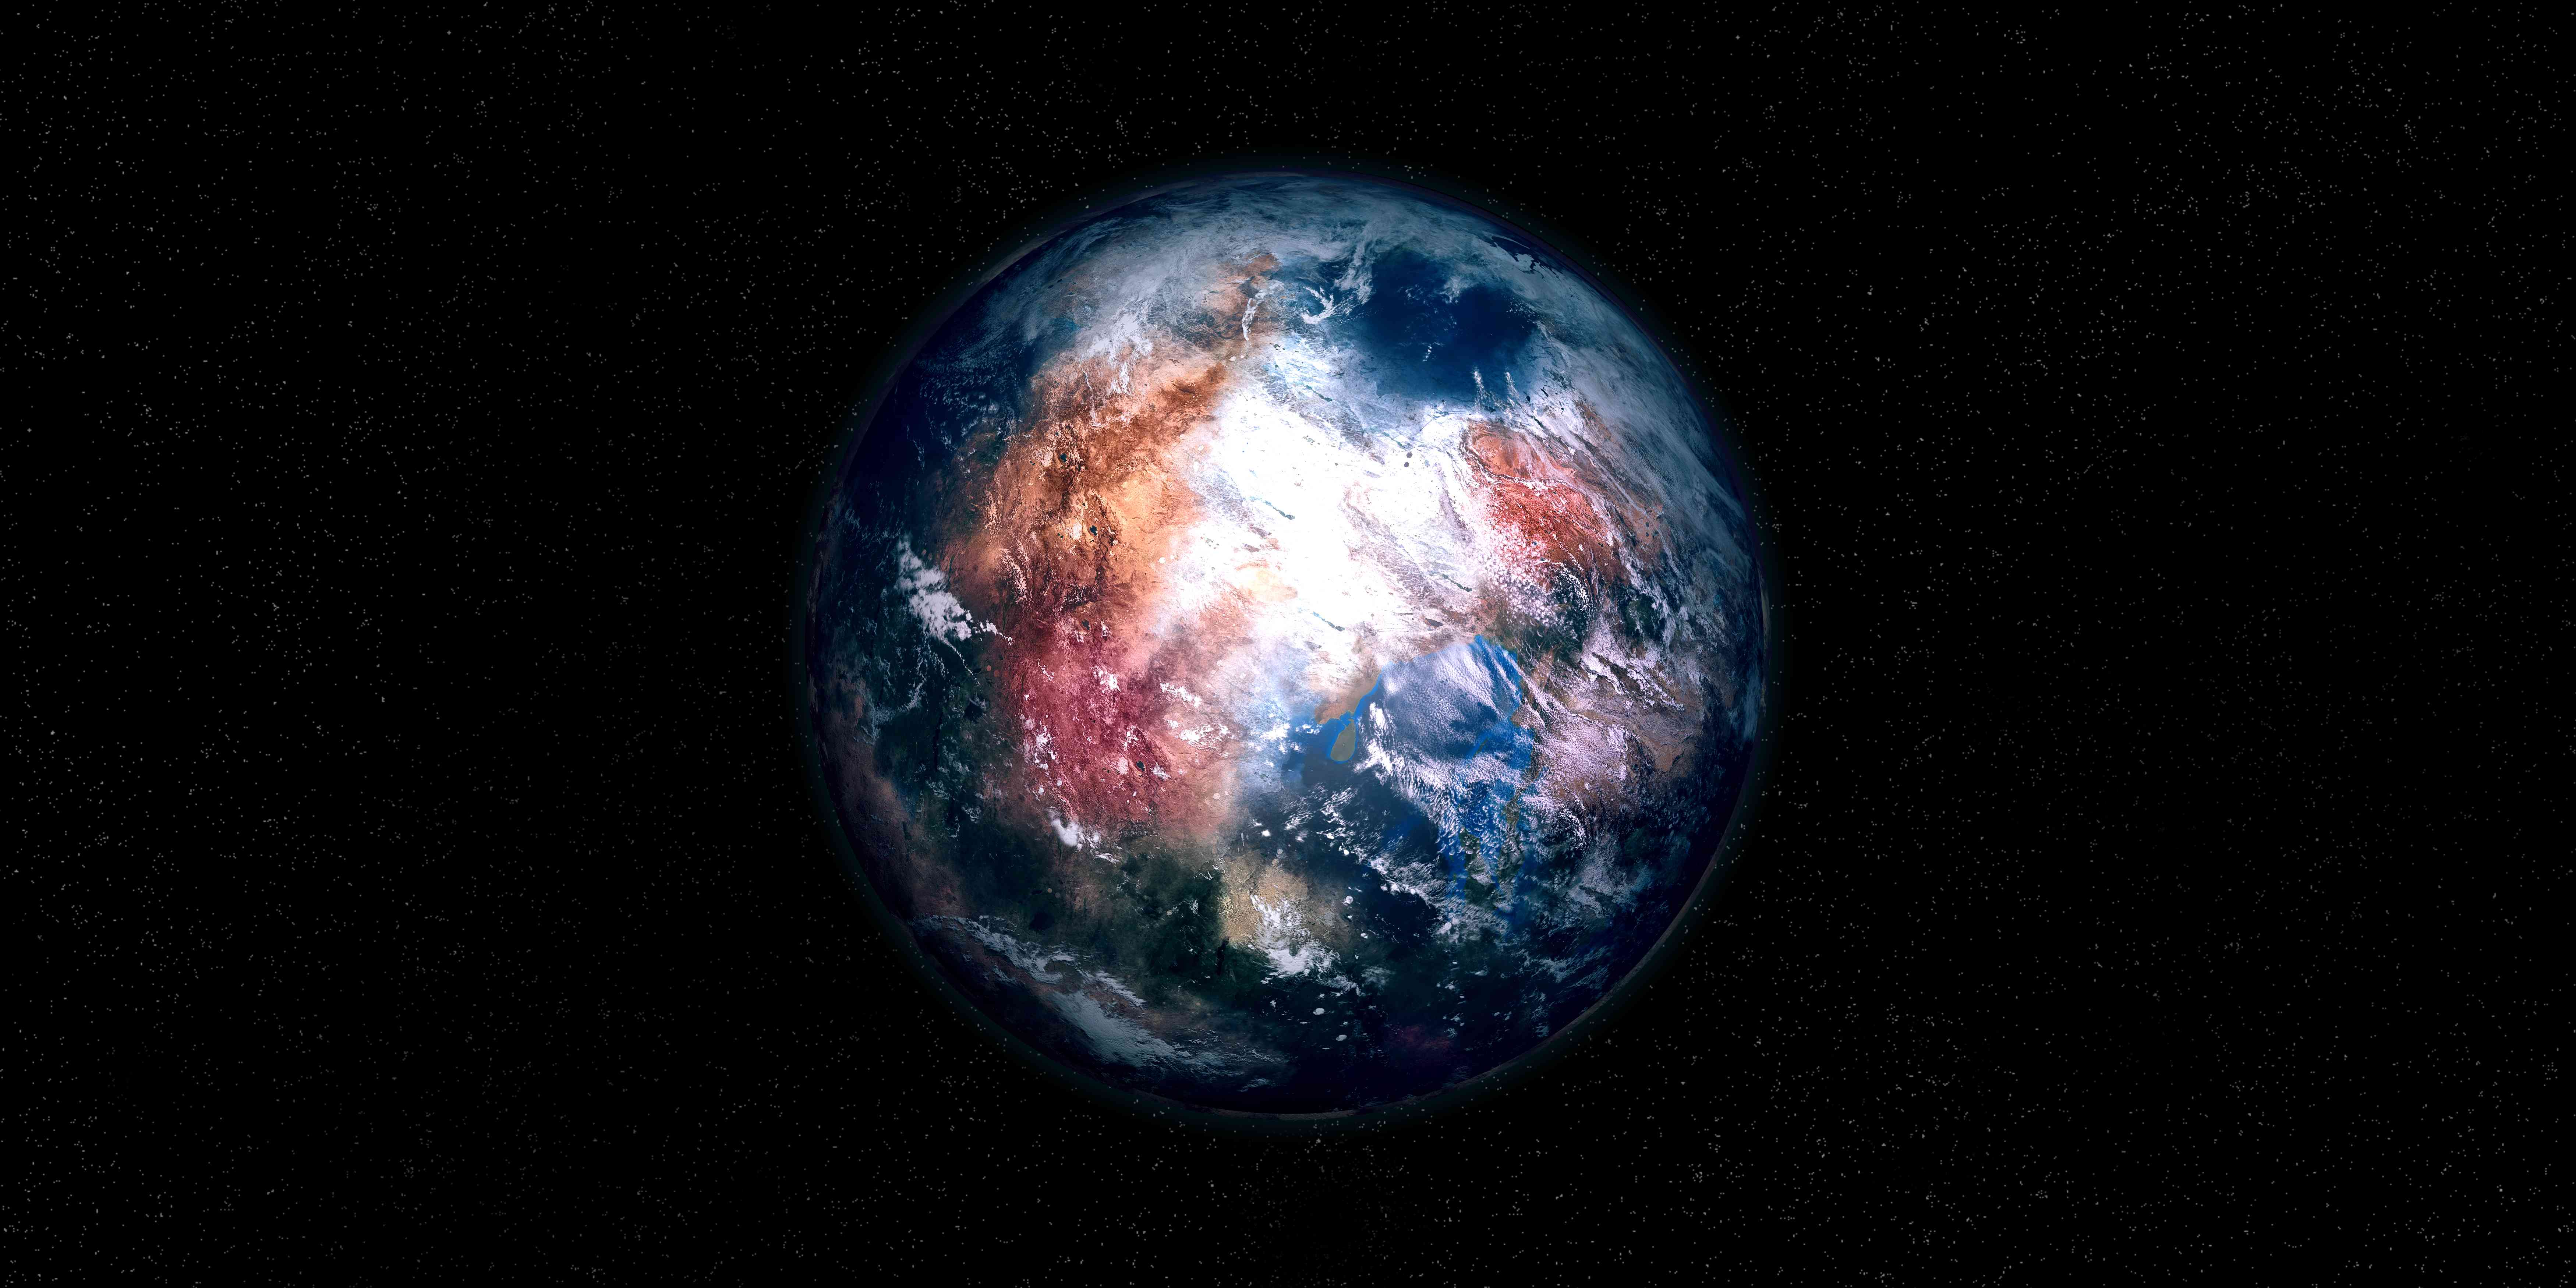 An illustration of an Earth-like exoplanet.